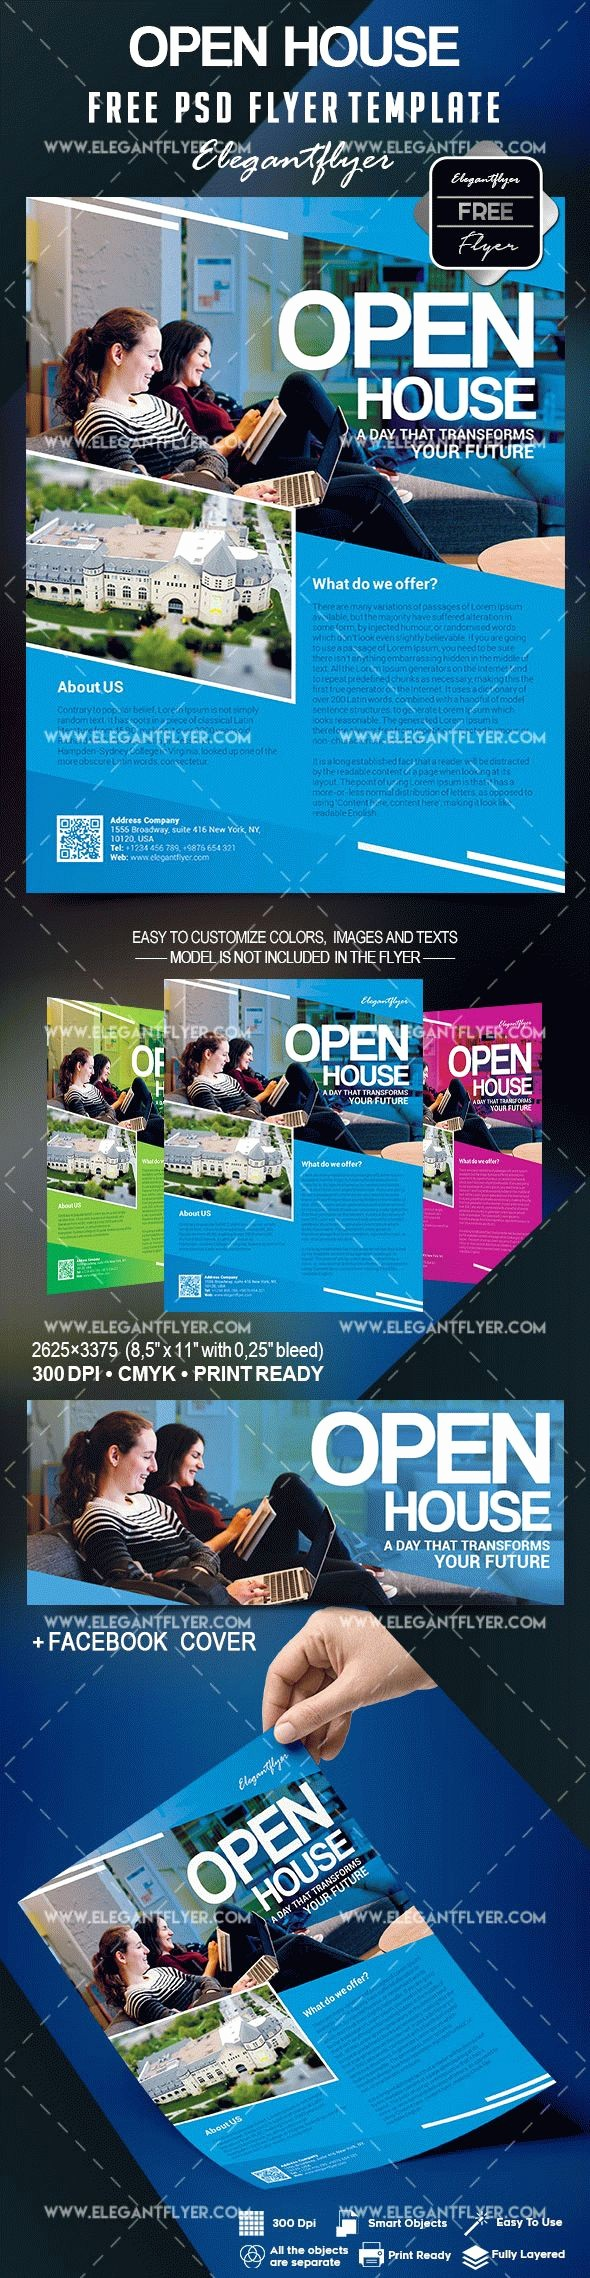 Open House Flyer Templates Free Elegant Open House Flyer Template Free – by Elegantflyer